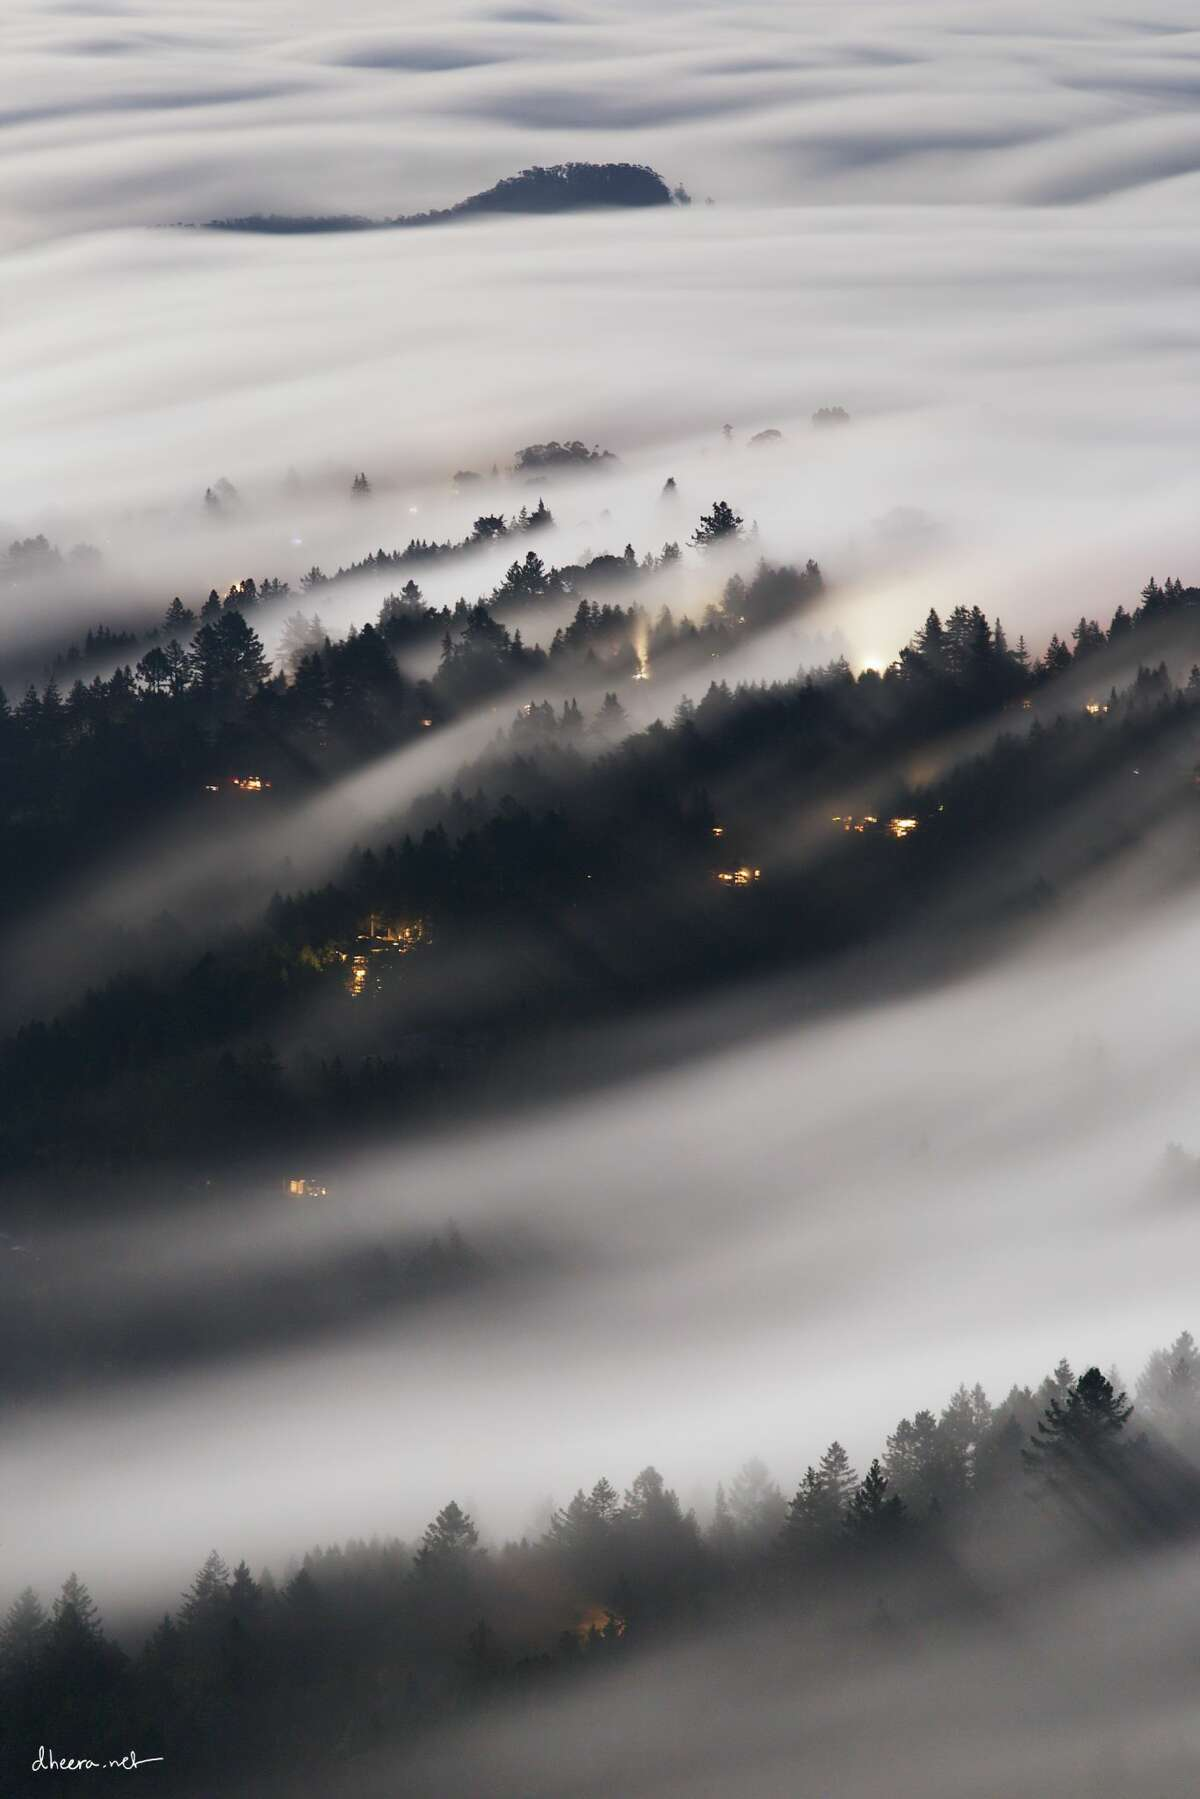 The Marin County hills near Mount Tamalpais are wrapped in fog in this photo by Palo Alto robotics engineer Dheera Venkatraman, whose work can be seen on Instagram.(Special to SFGATE.)